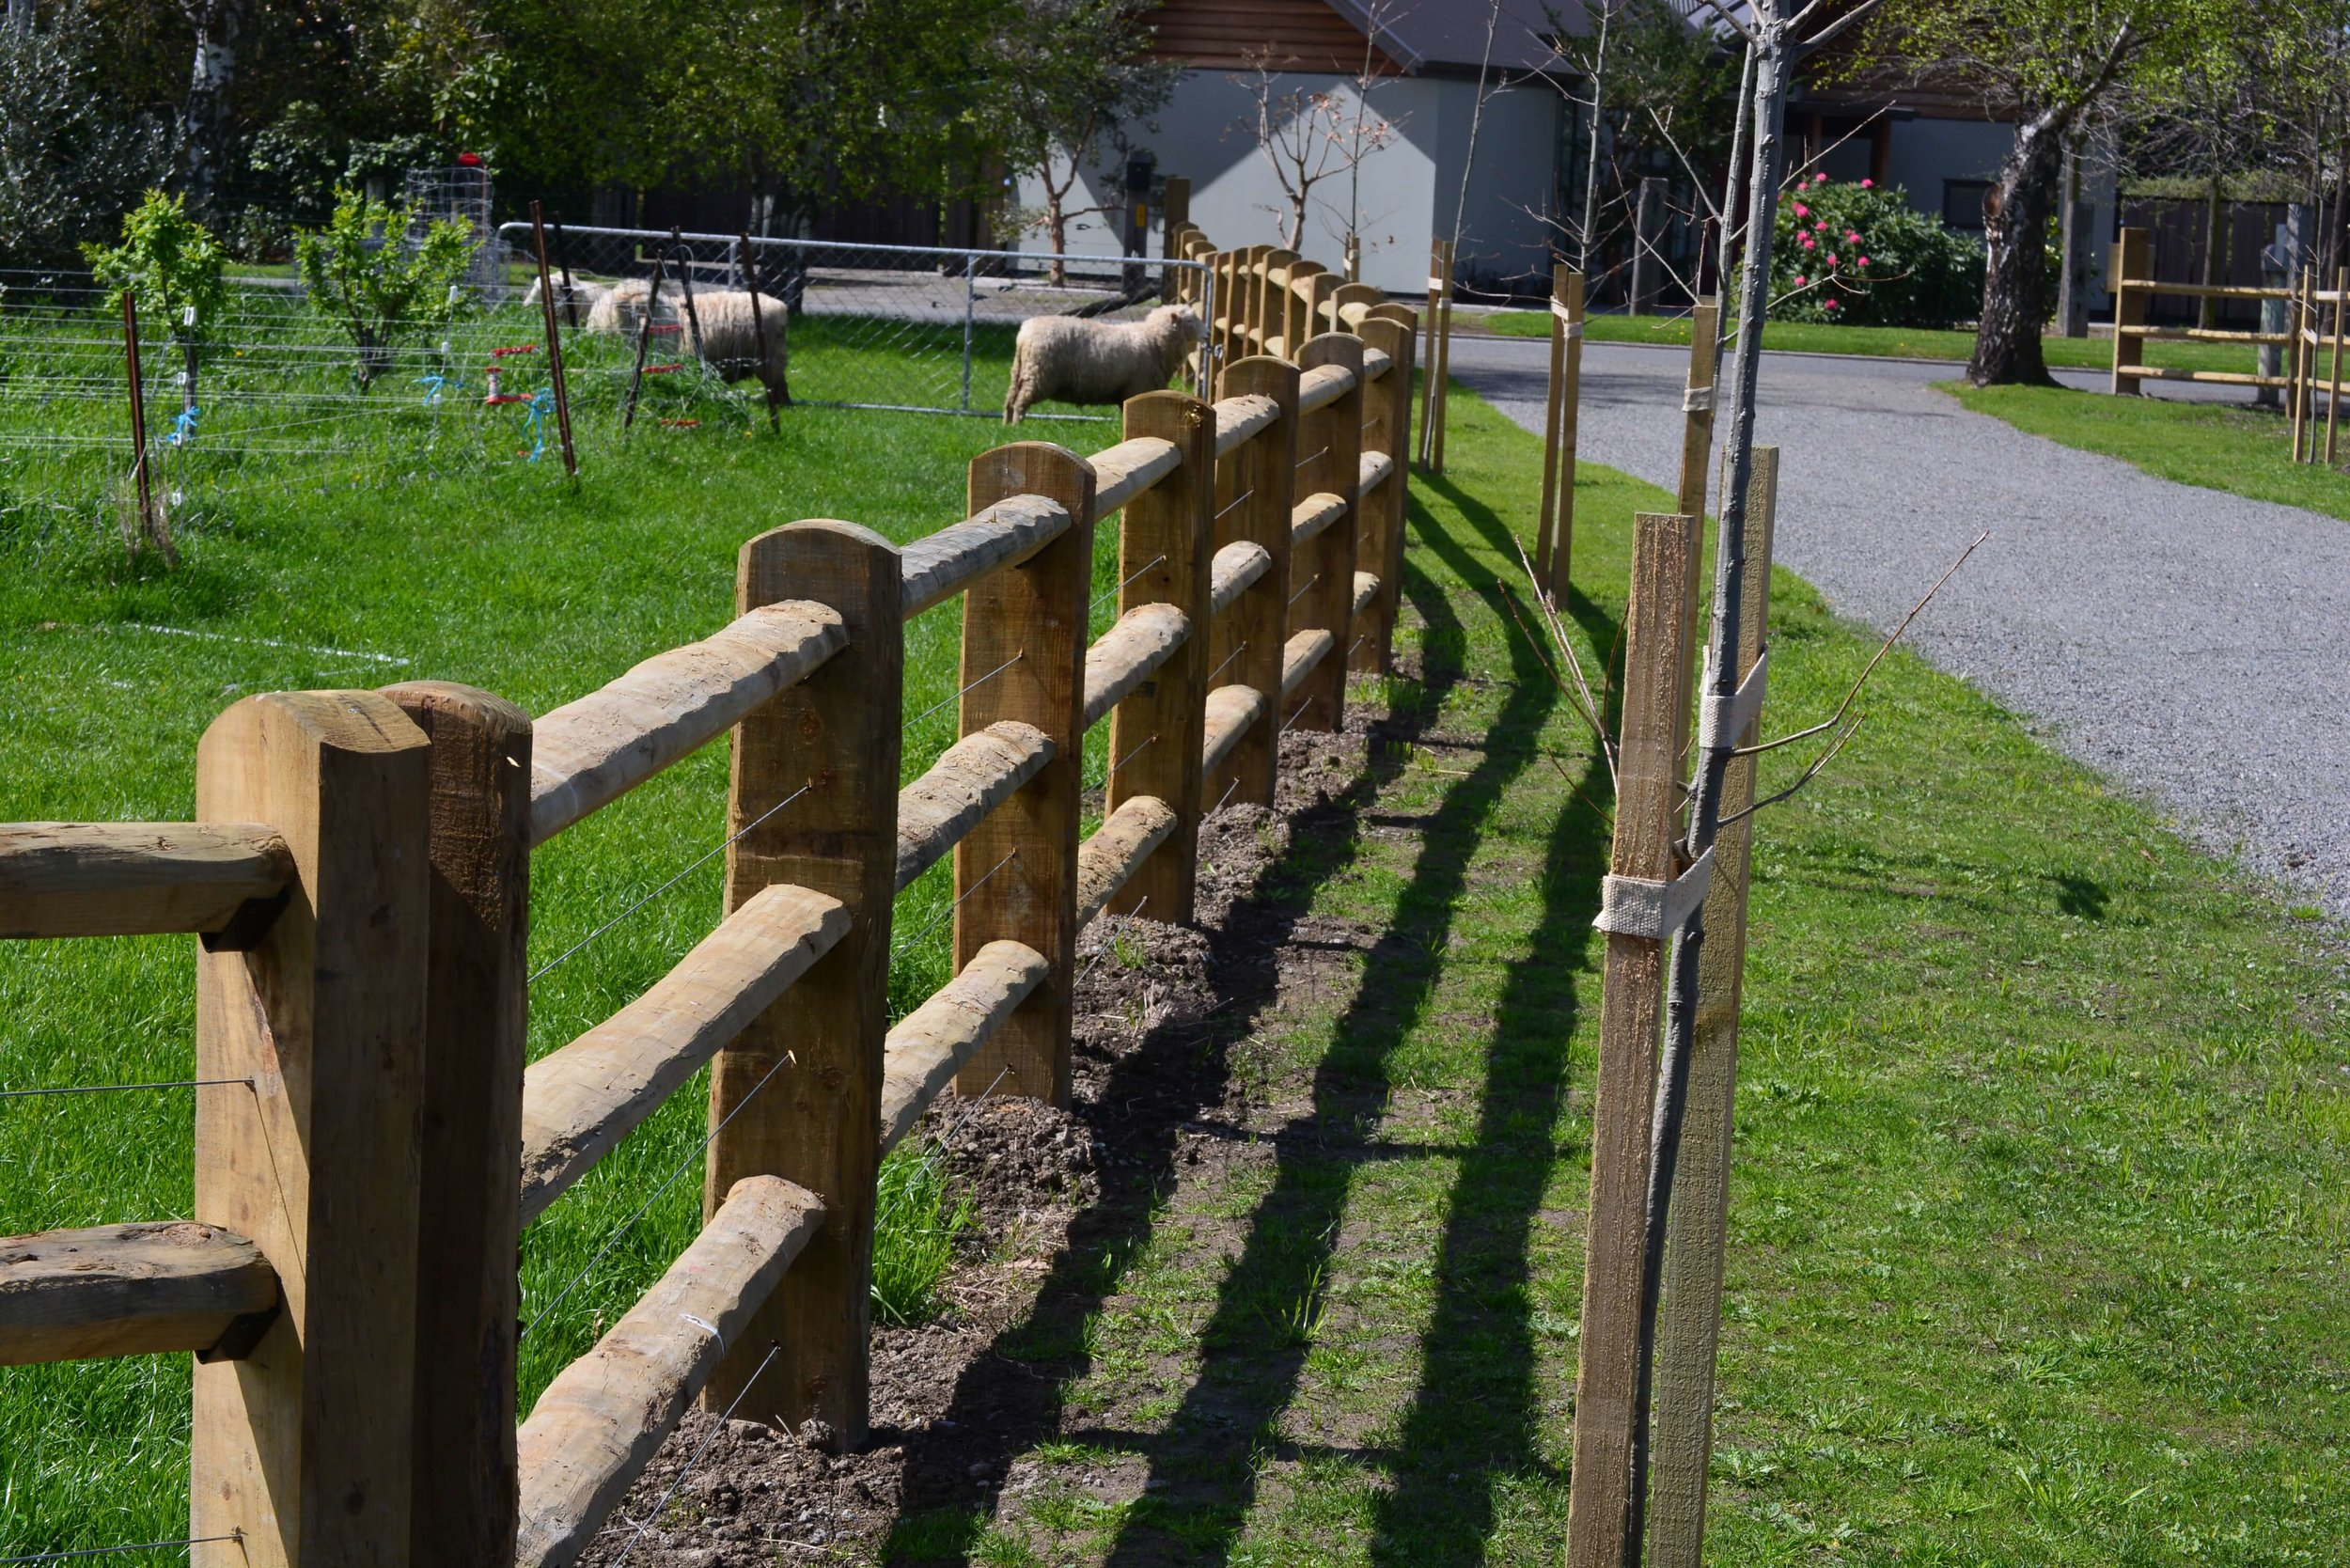 Blackmore Fencing residential and lifestyle fencing services.